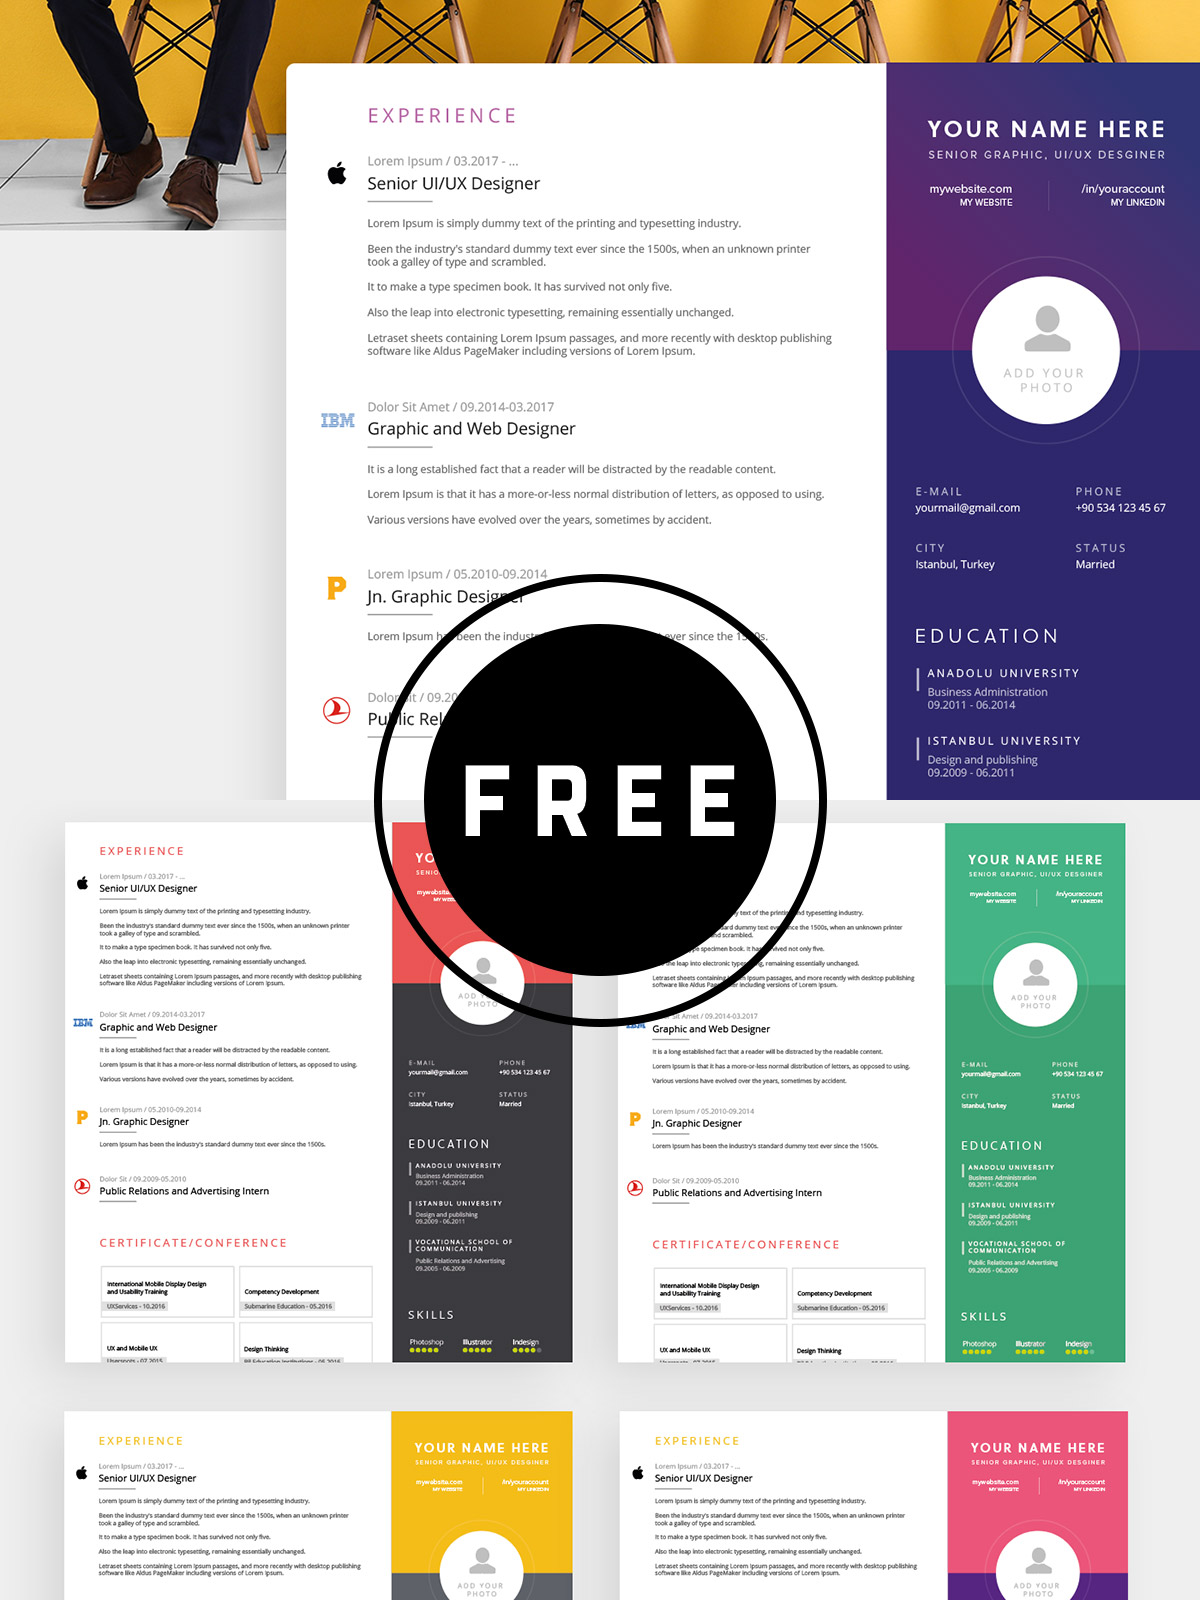 awesome free resume templates for creativetacos creative editable bus driver position Resume Free Creative Resume Templates Editable